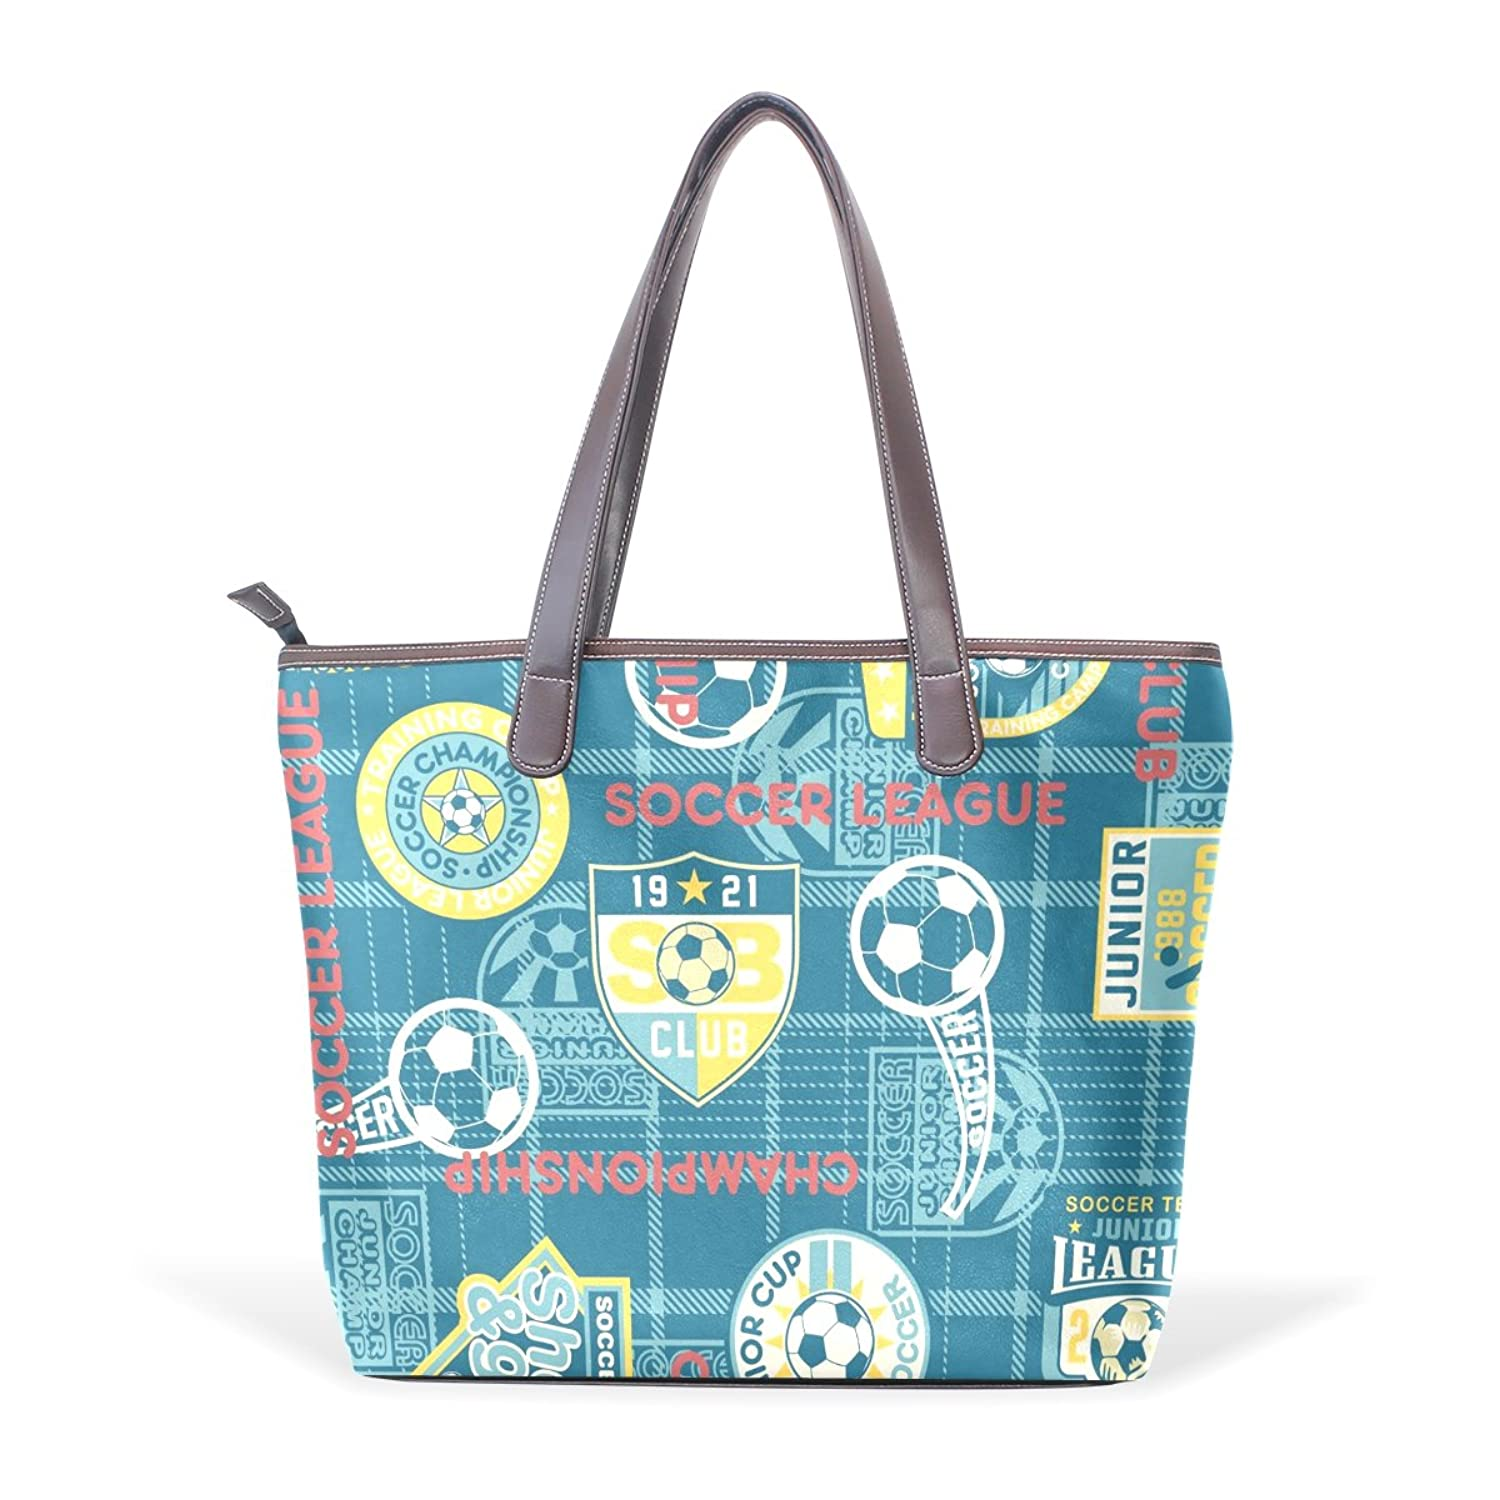 Womens Leather Tote Bag,Vintage Travel Stickers Navy Aircraft,Large Handbag